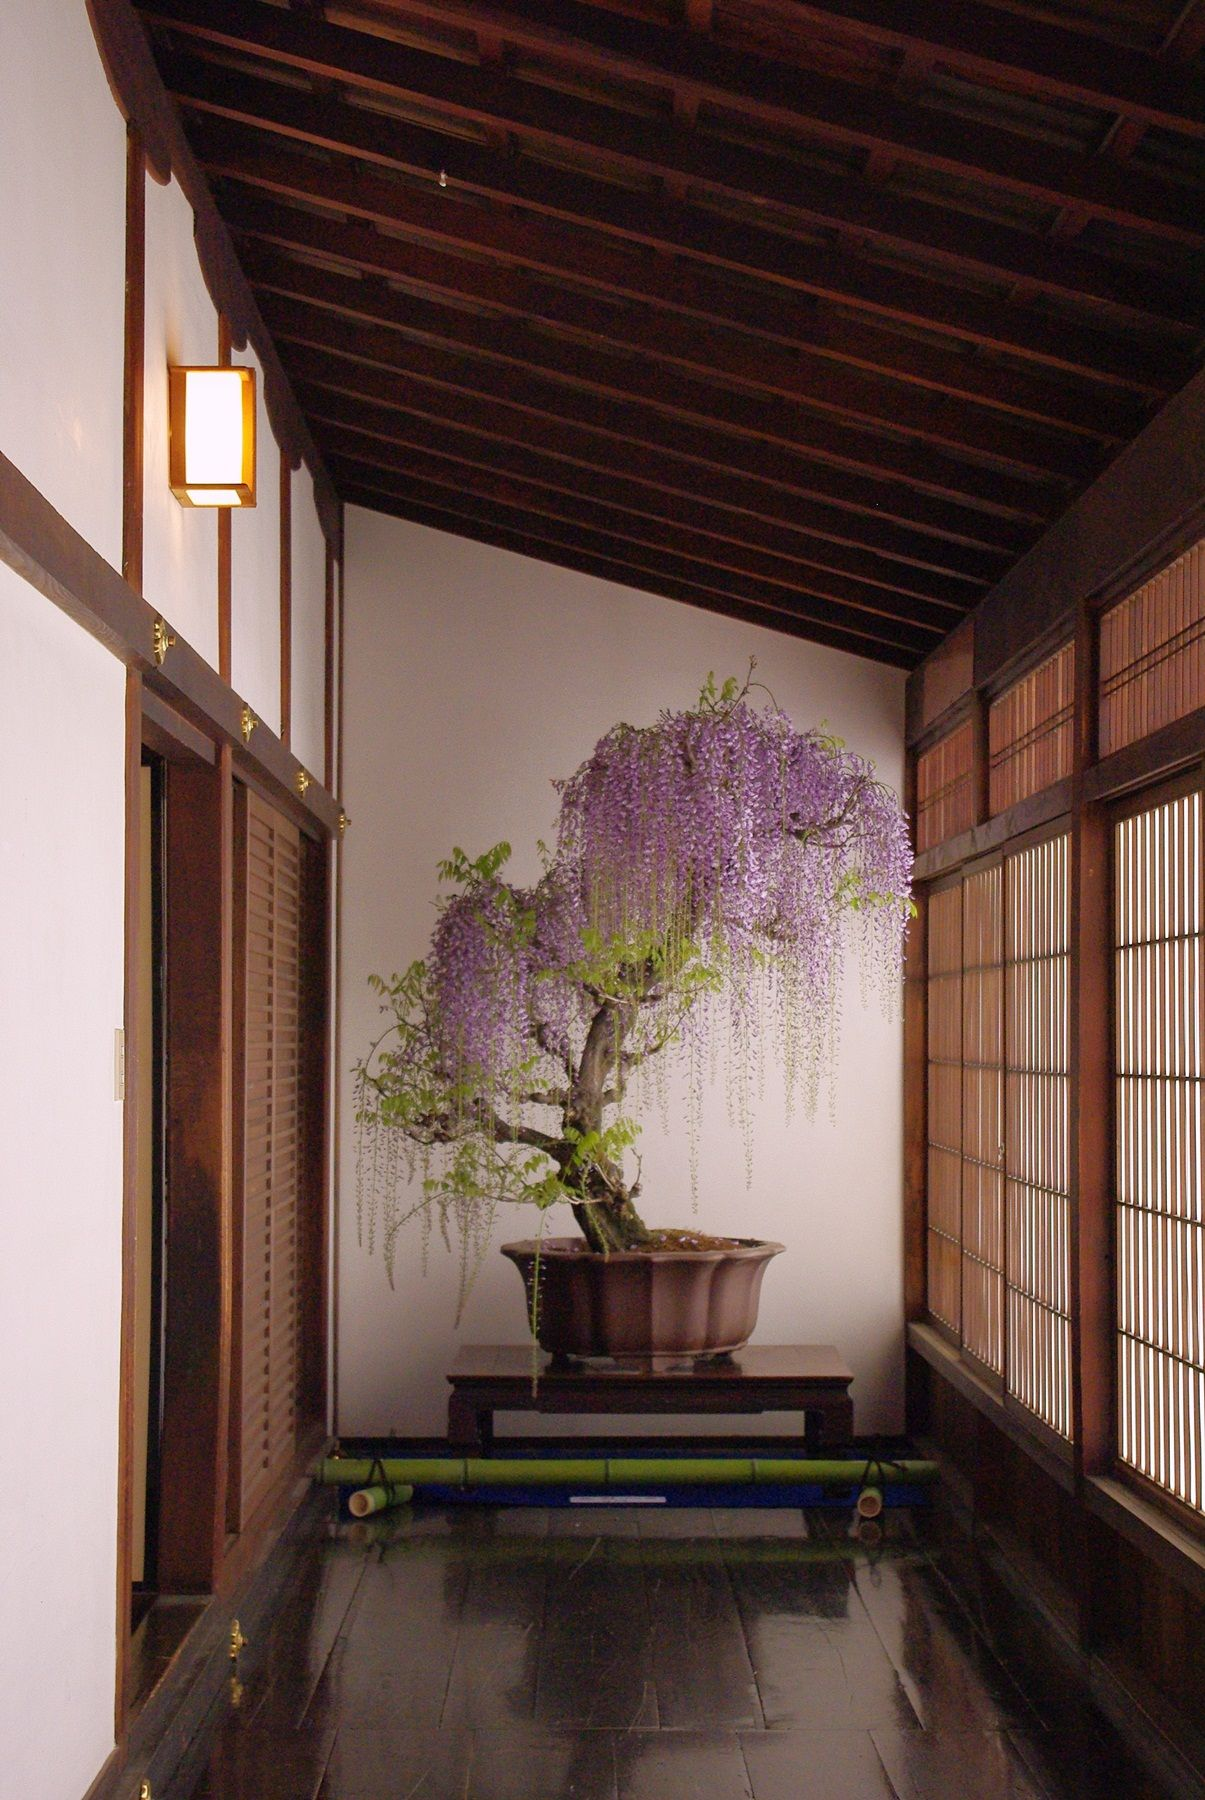 bonsai tree for office. Wisteria Bonsai In The Entrance To A Japanese House. I Want An Indoor Wisteria. Tree For Office C